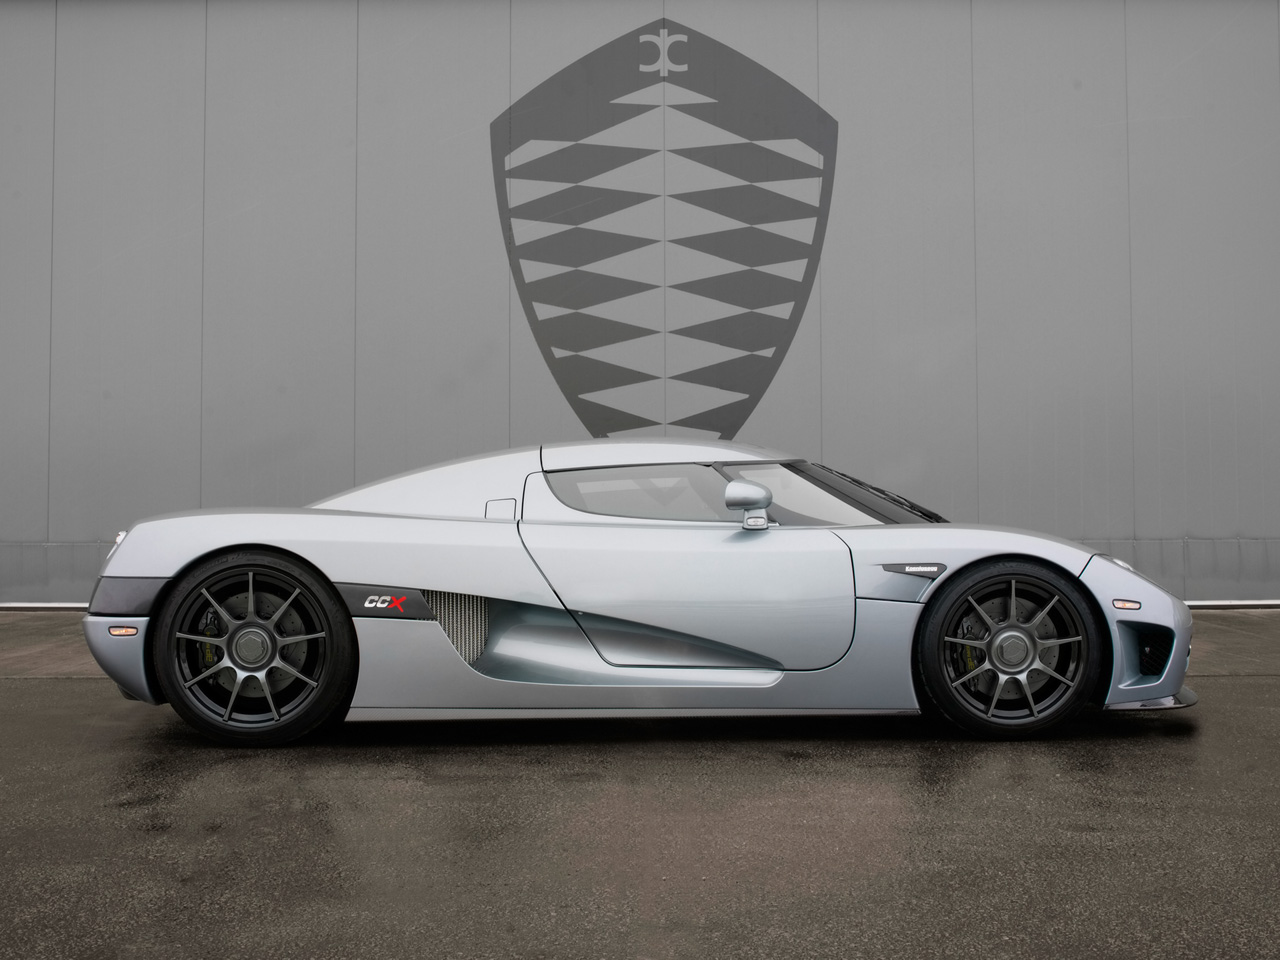 Top Luxury Speed Cc8s Koenigsegg Cars Luxury Cars